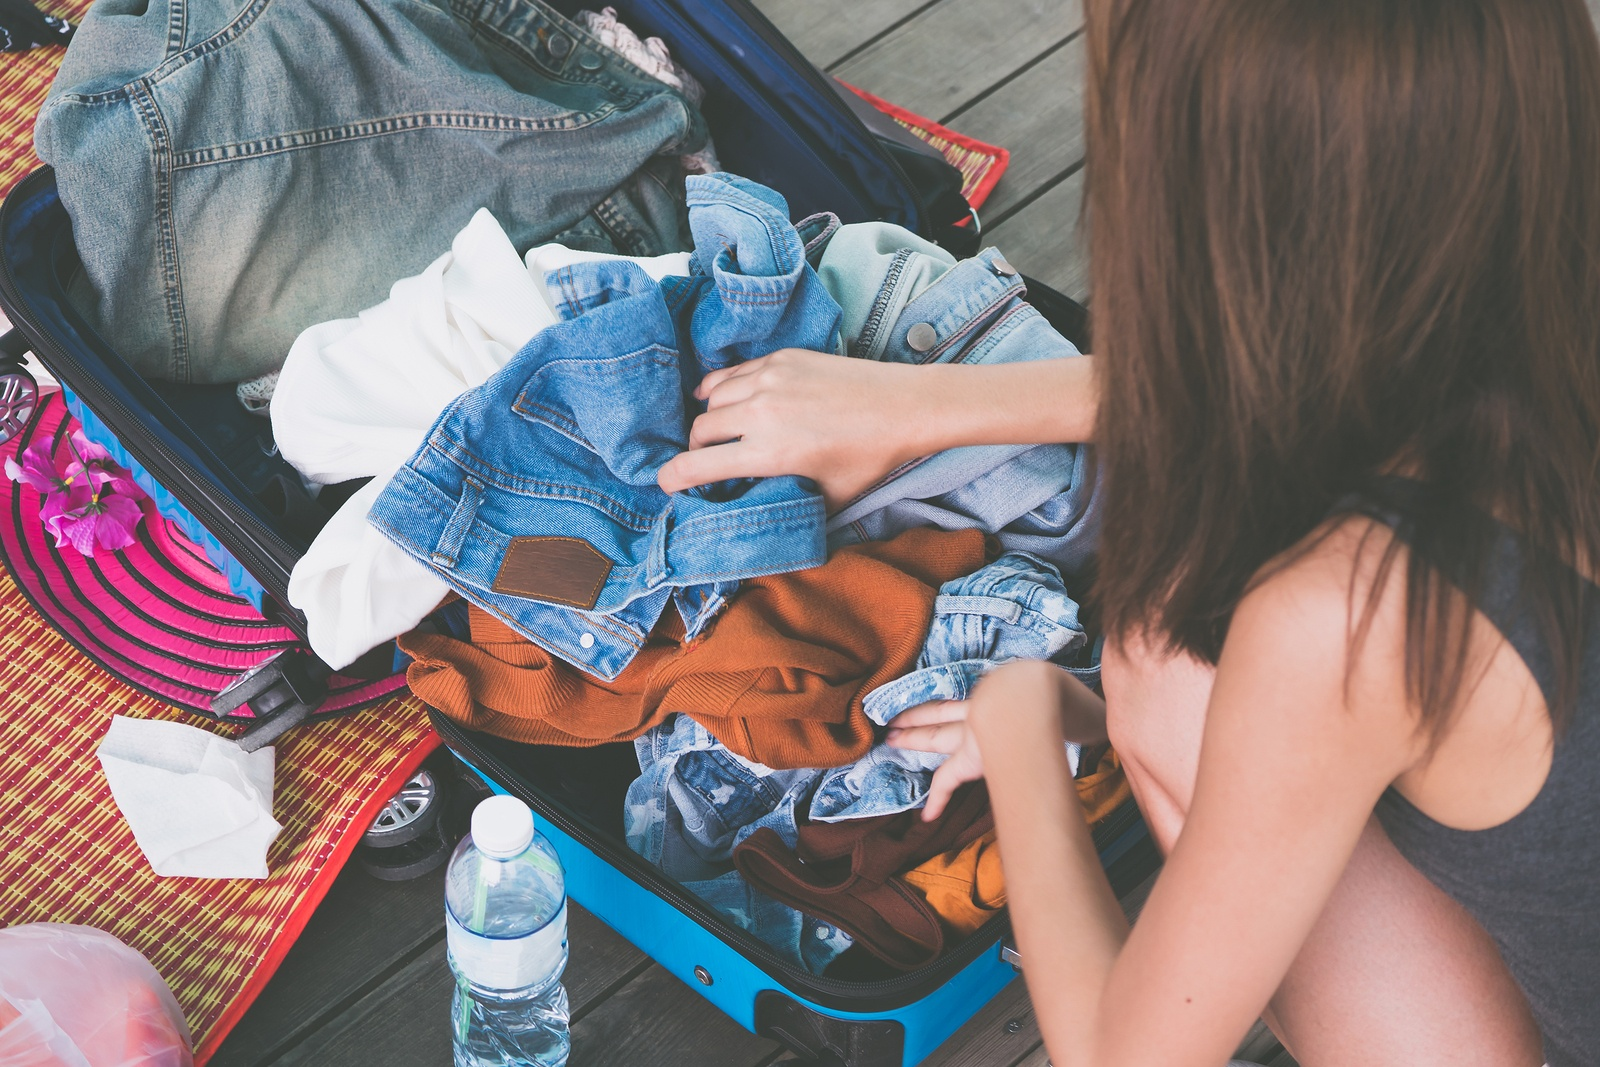 bigstock-Woman-Packing-Clothes-Into-A-T-244895476 (1).jpg